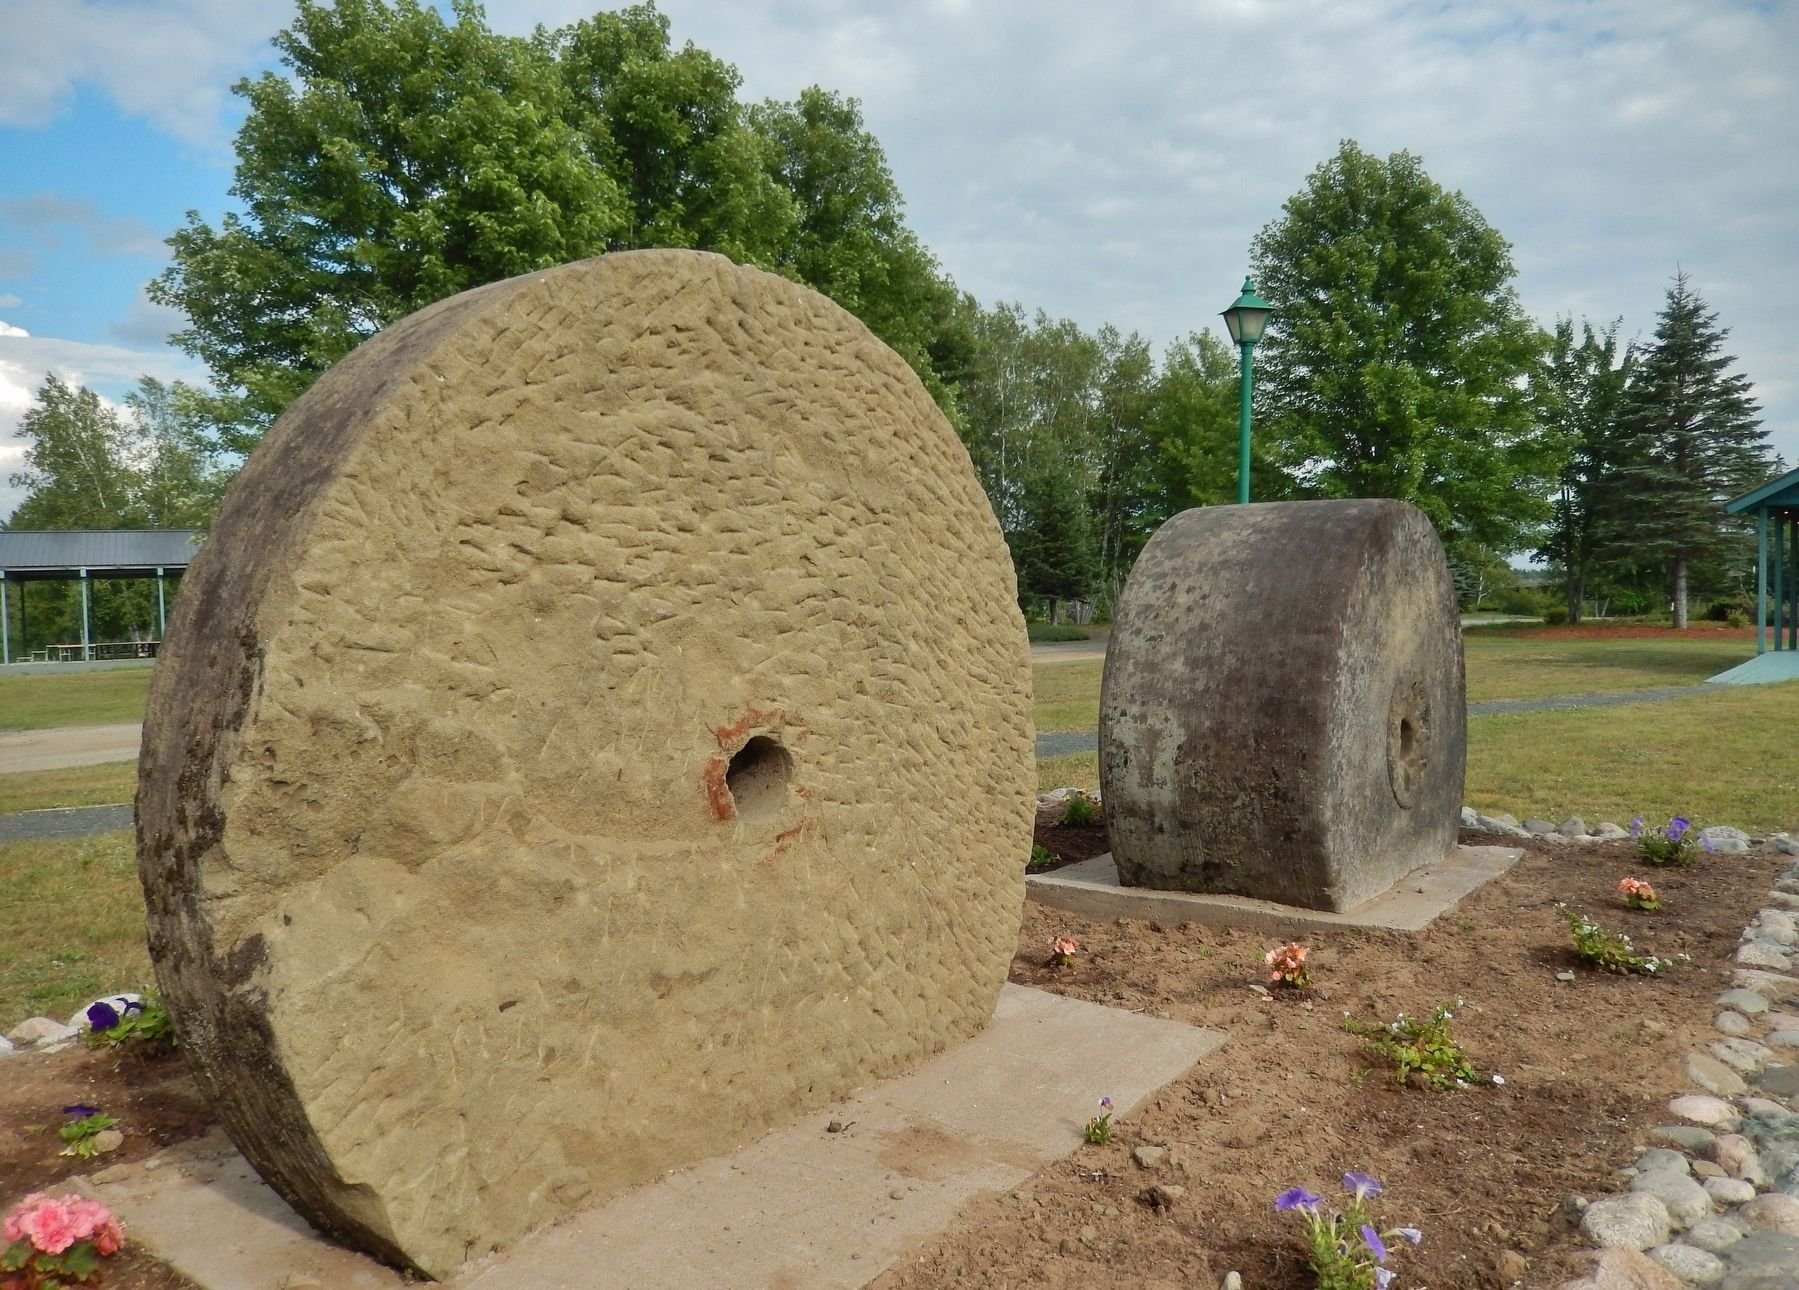 Millstones (<i>side view showing scoring and relative width</i>) image. Click for full size.